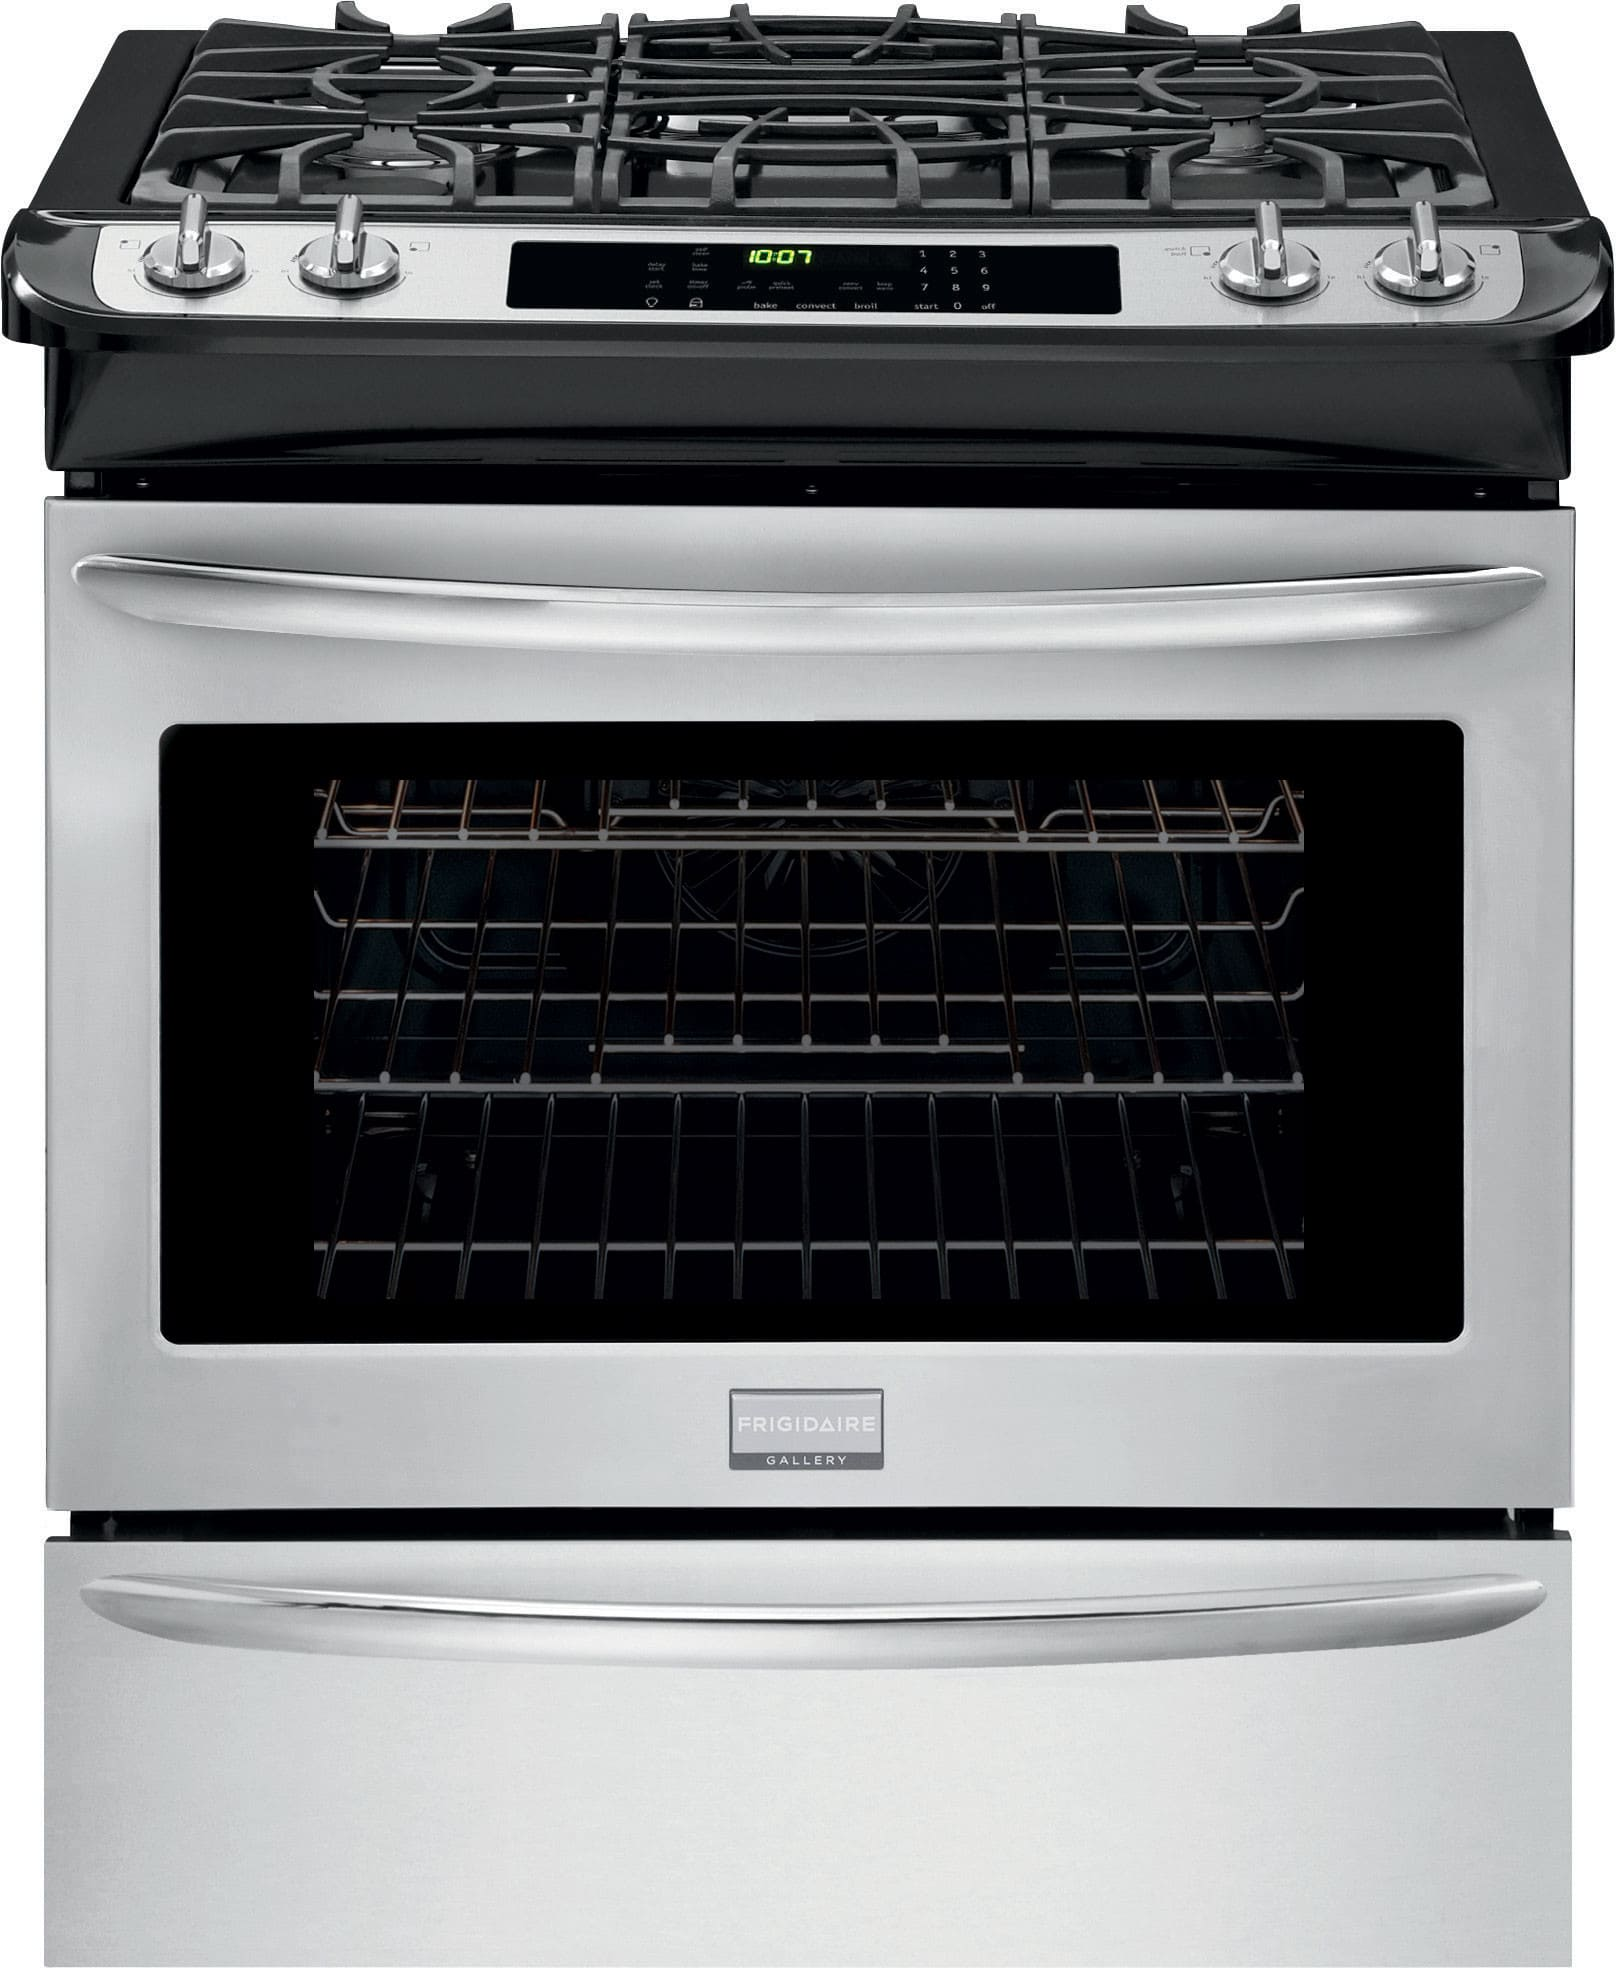 frigidaire fggs3065pf 30 inch slidein gas range with true convection quick preheat selfclean onetouch keep warm setting continuous grates